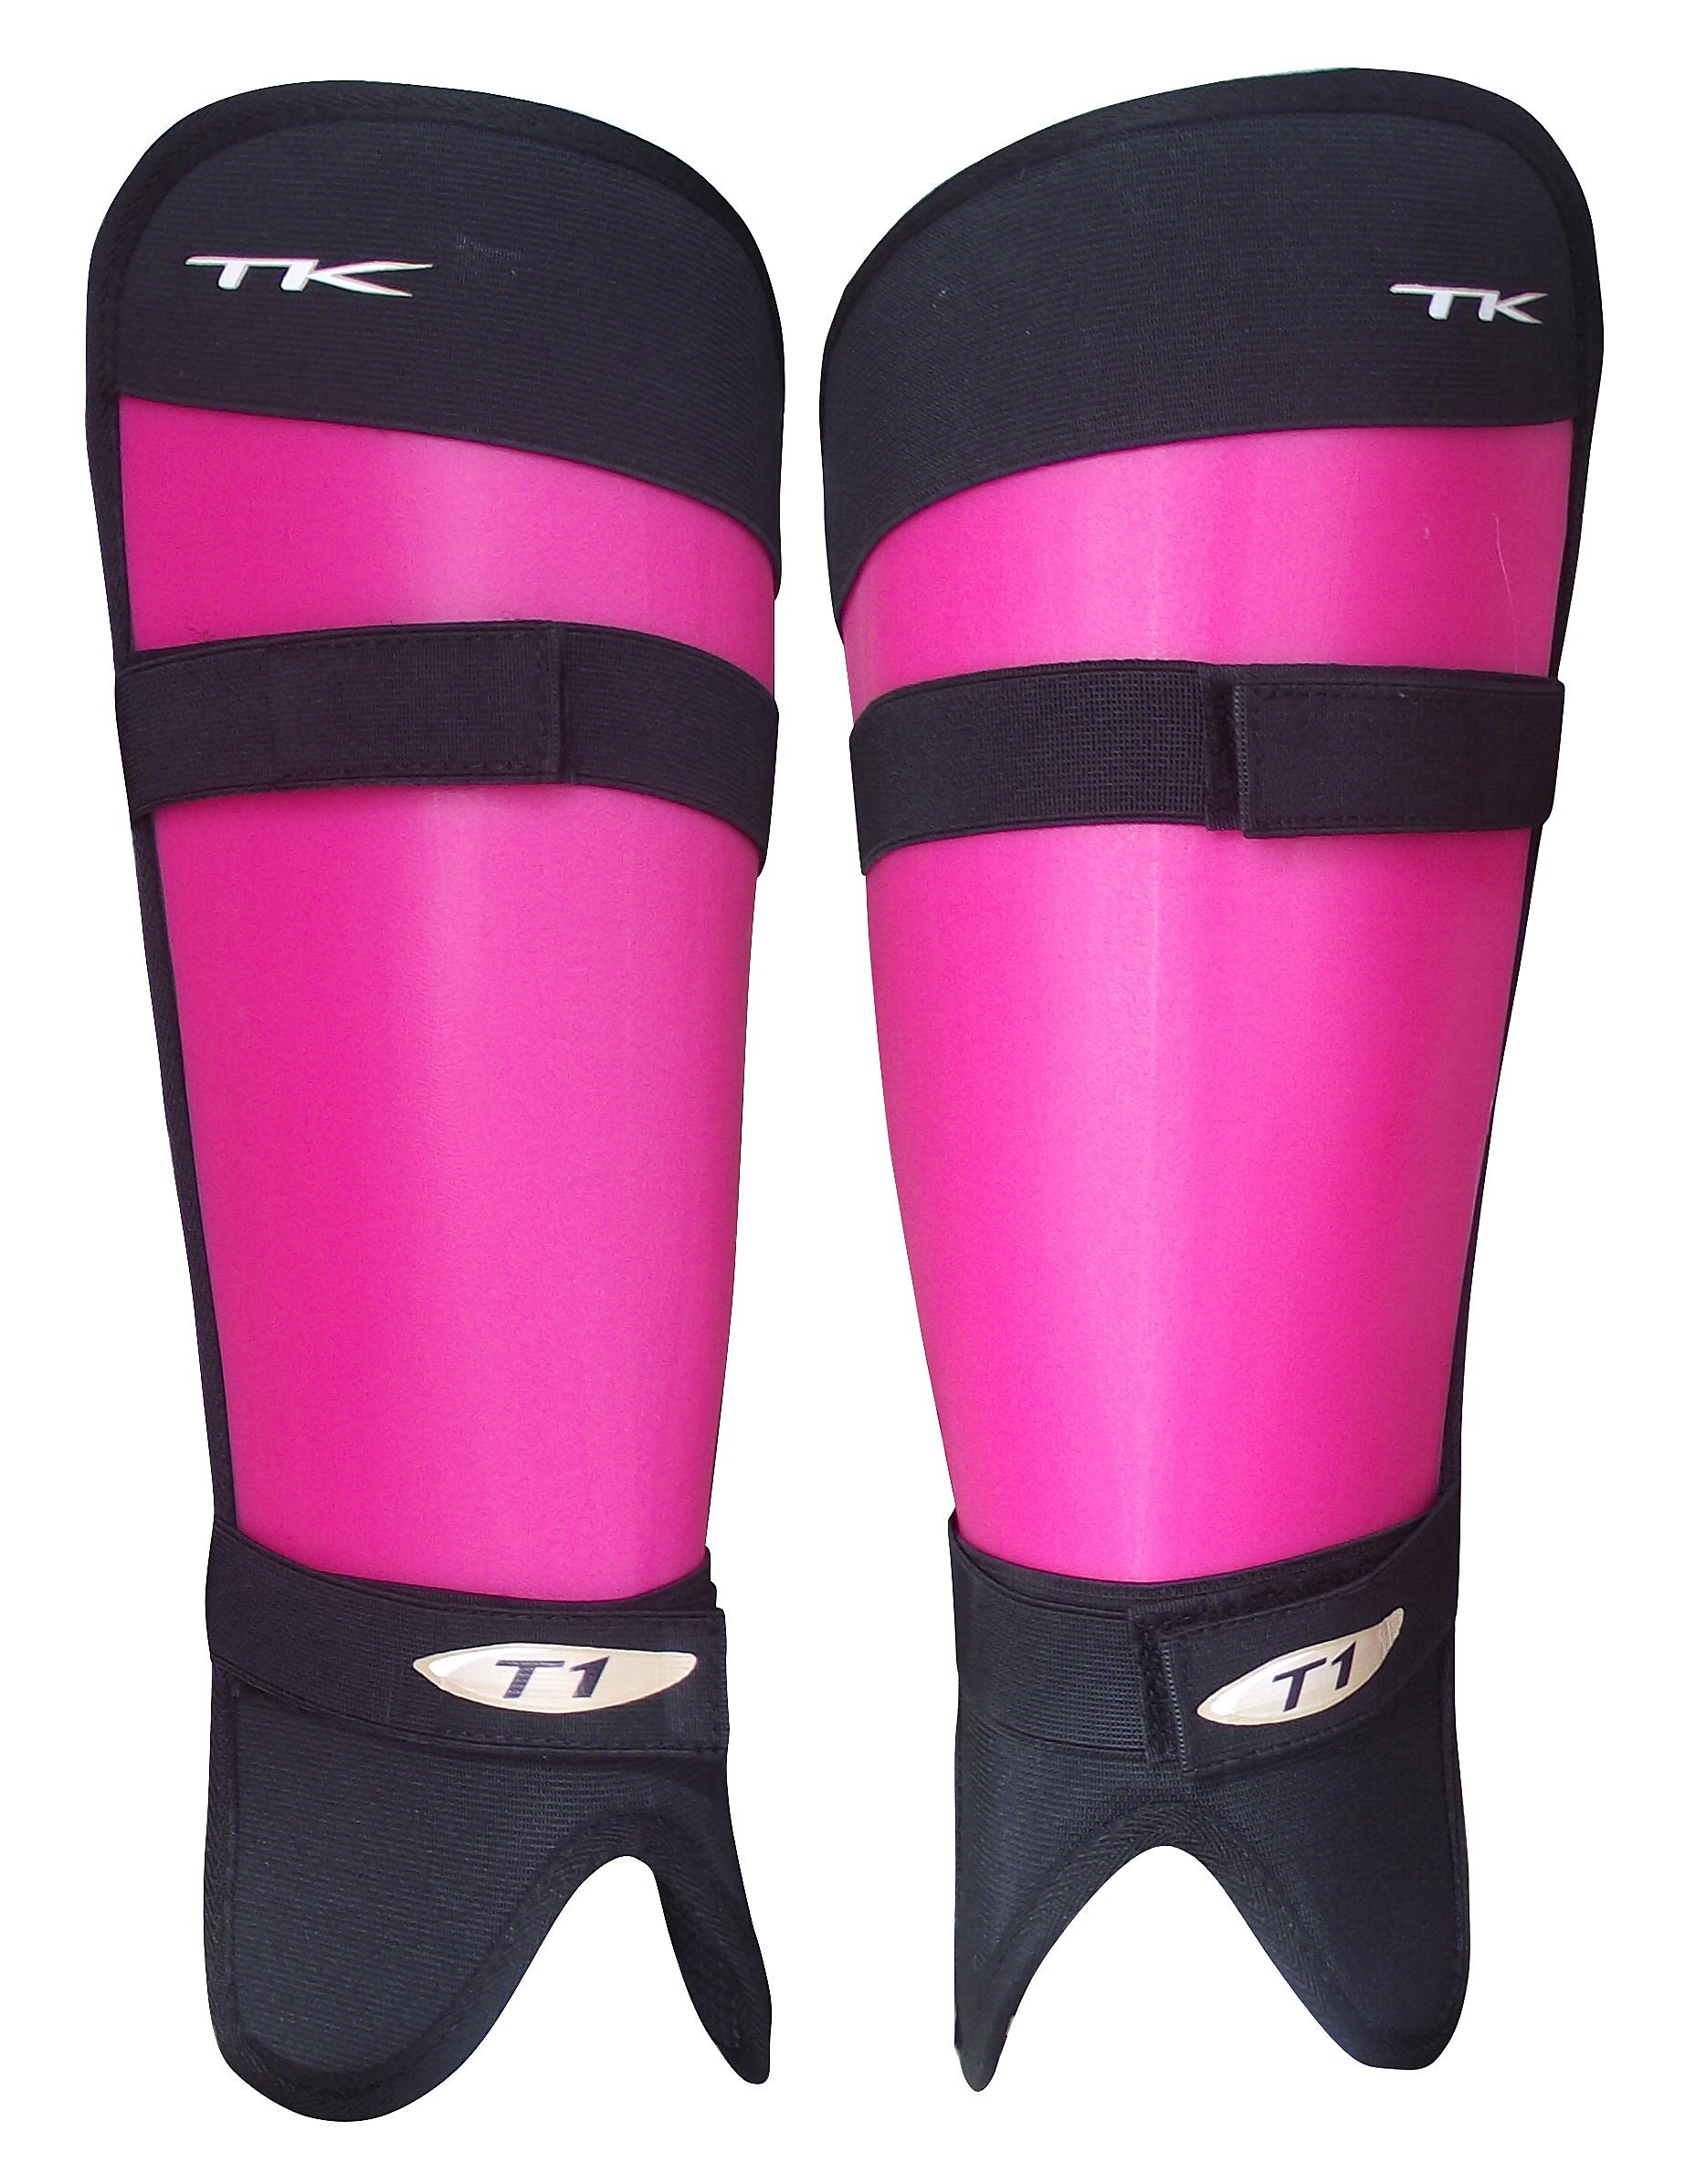 TK Hockey T1 Hockey Shin Guards